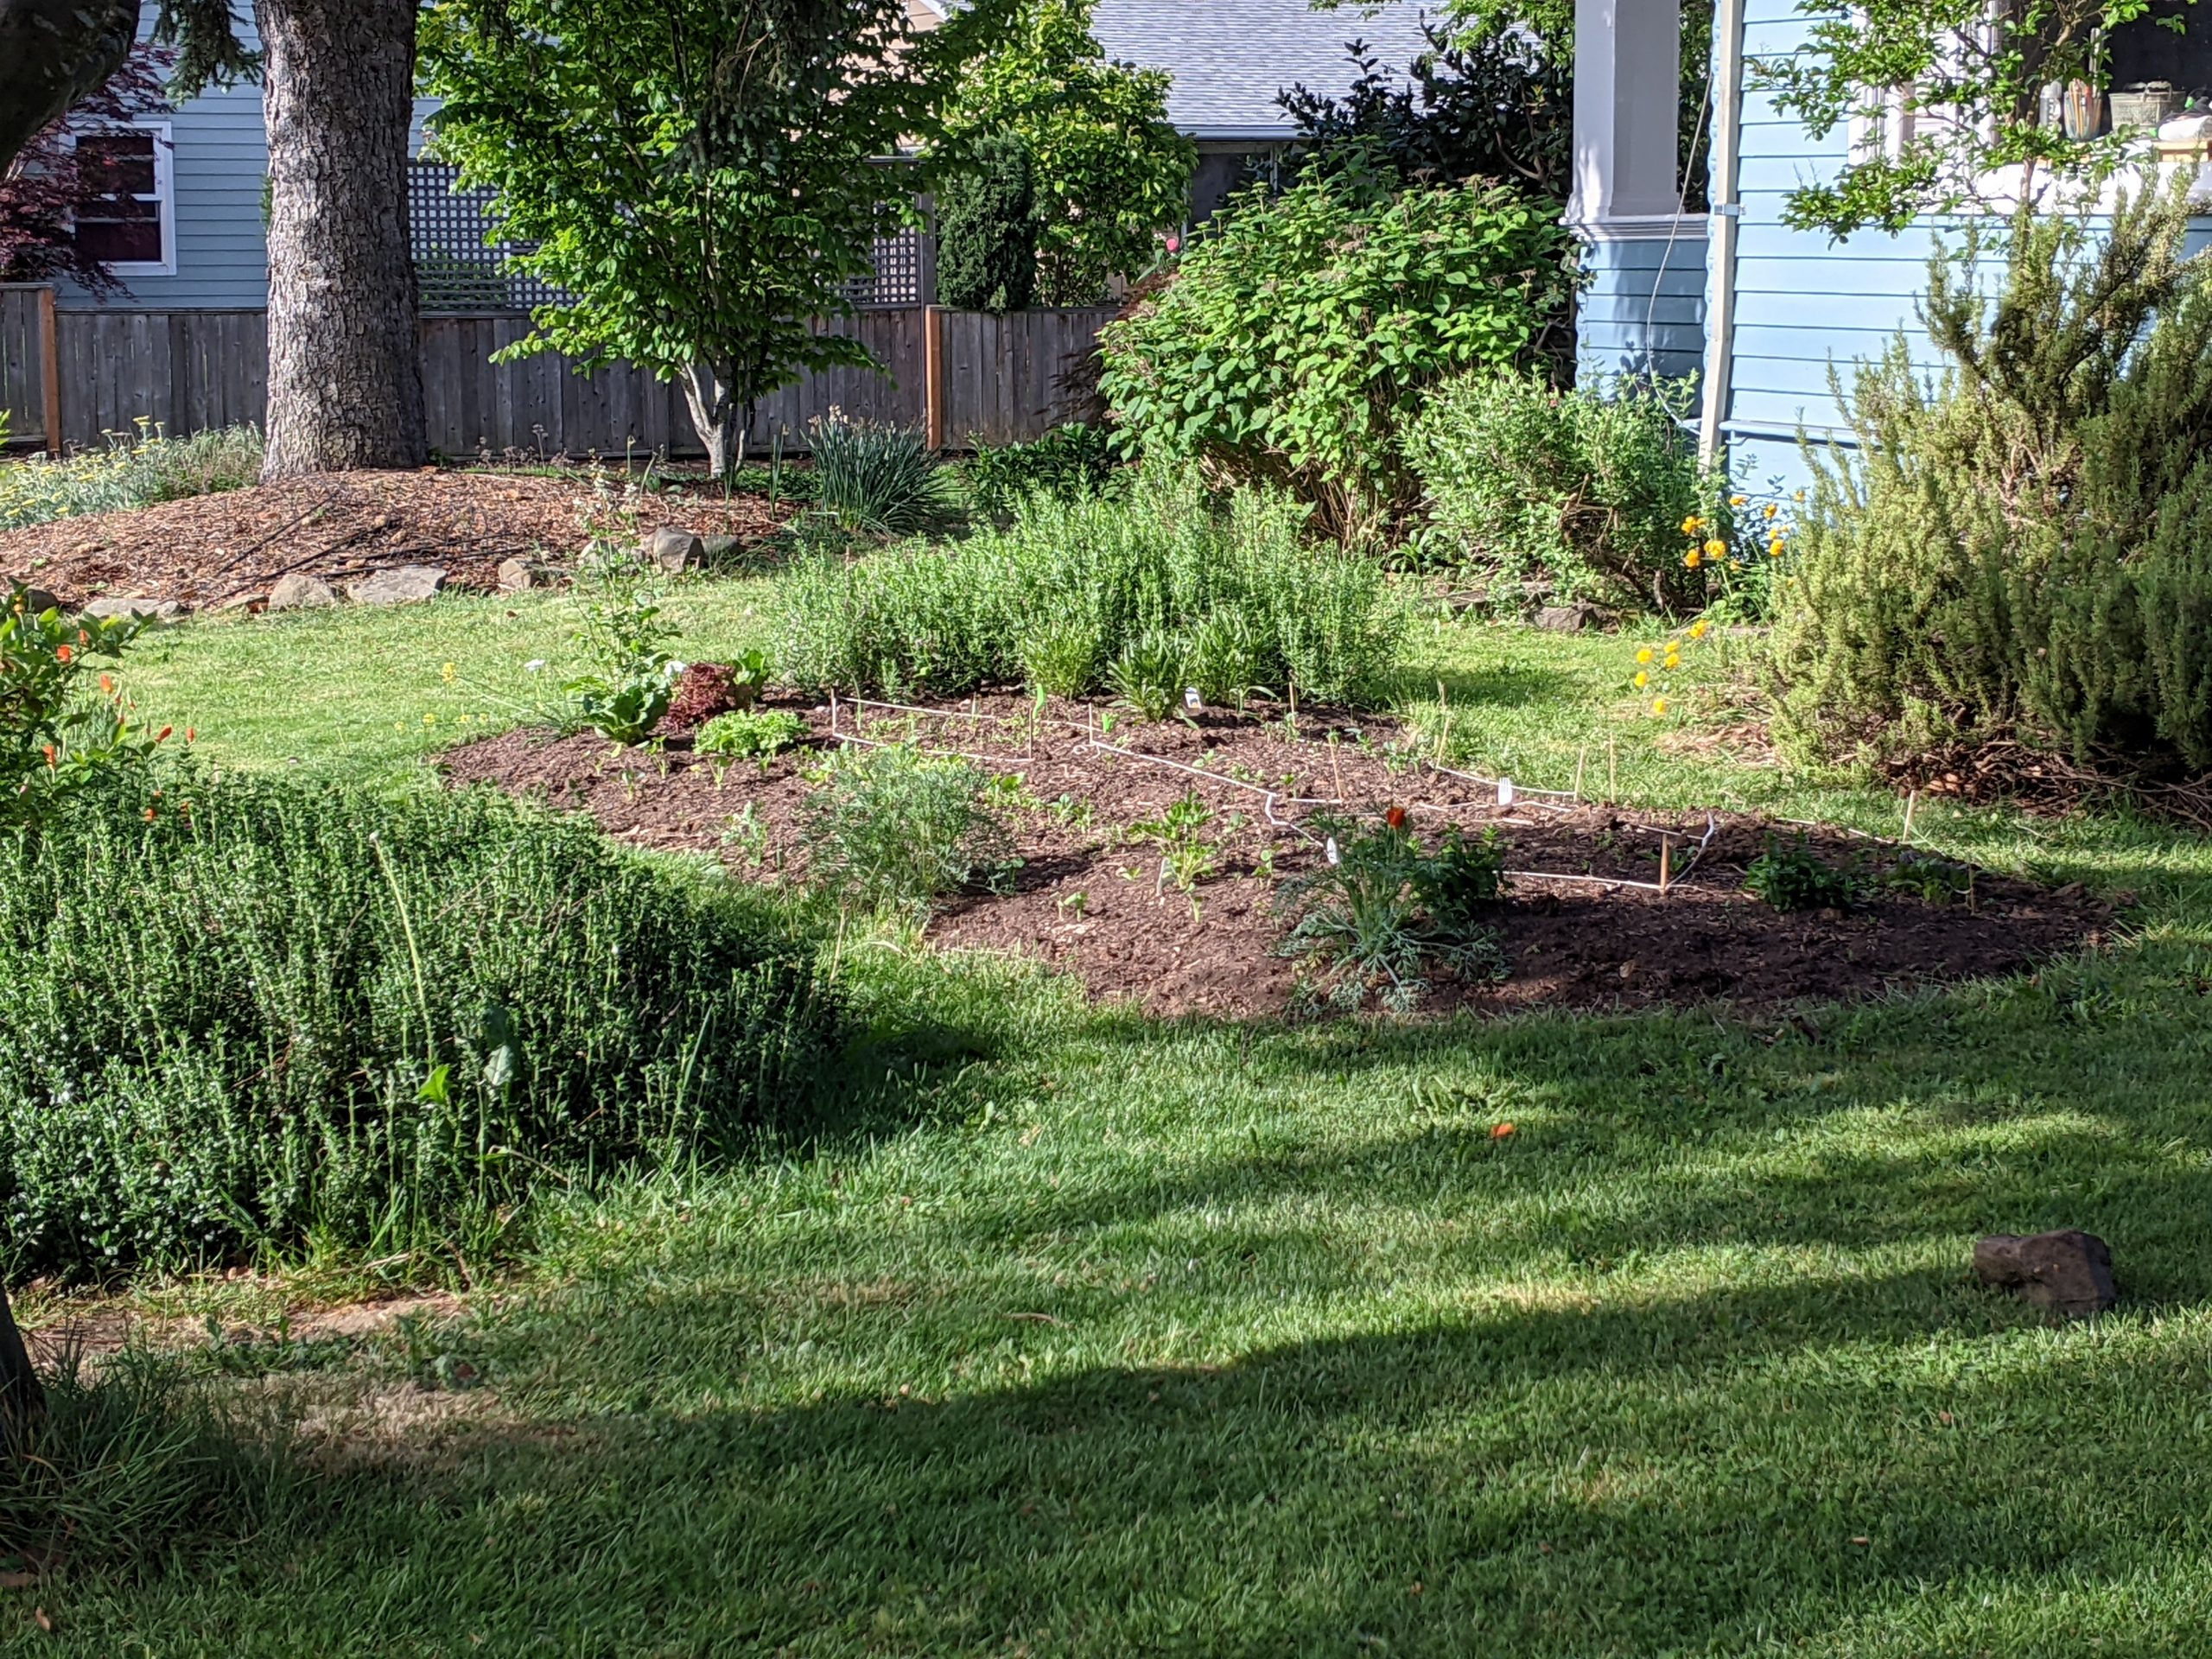 mounded earth garden bed surrounded by lawn